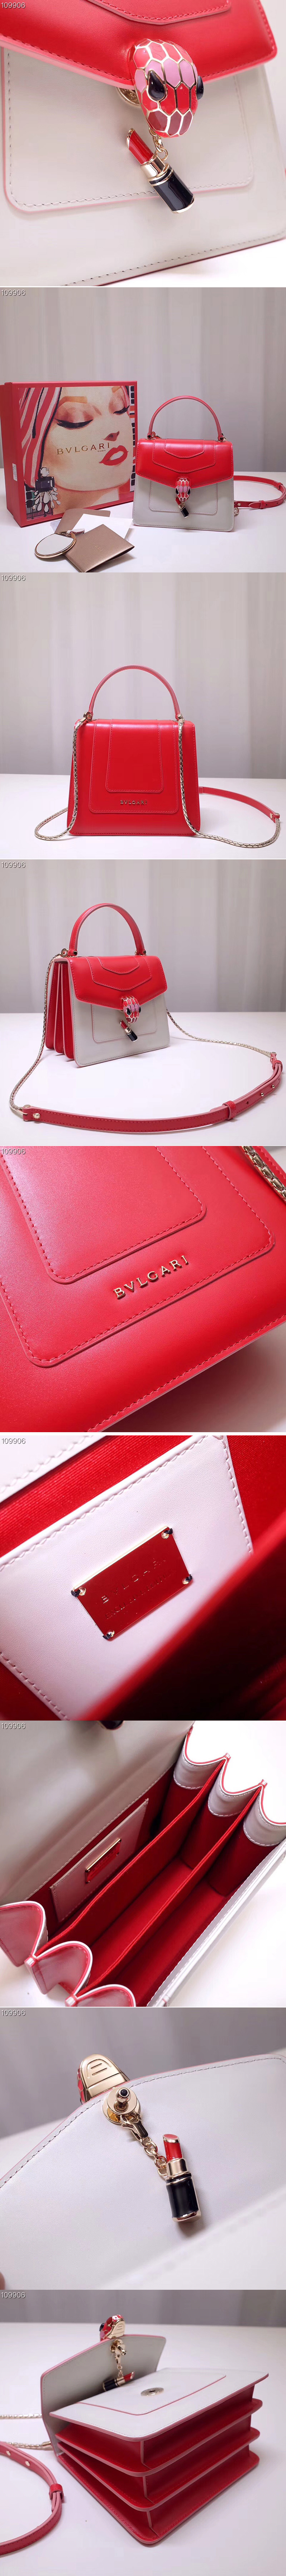 Replica Bvlgari Serpenti Forever 288676 Crossbody Bags Red/White Calf Leather